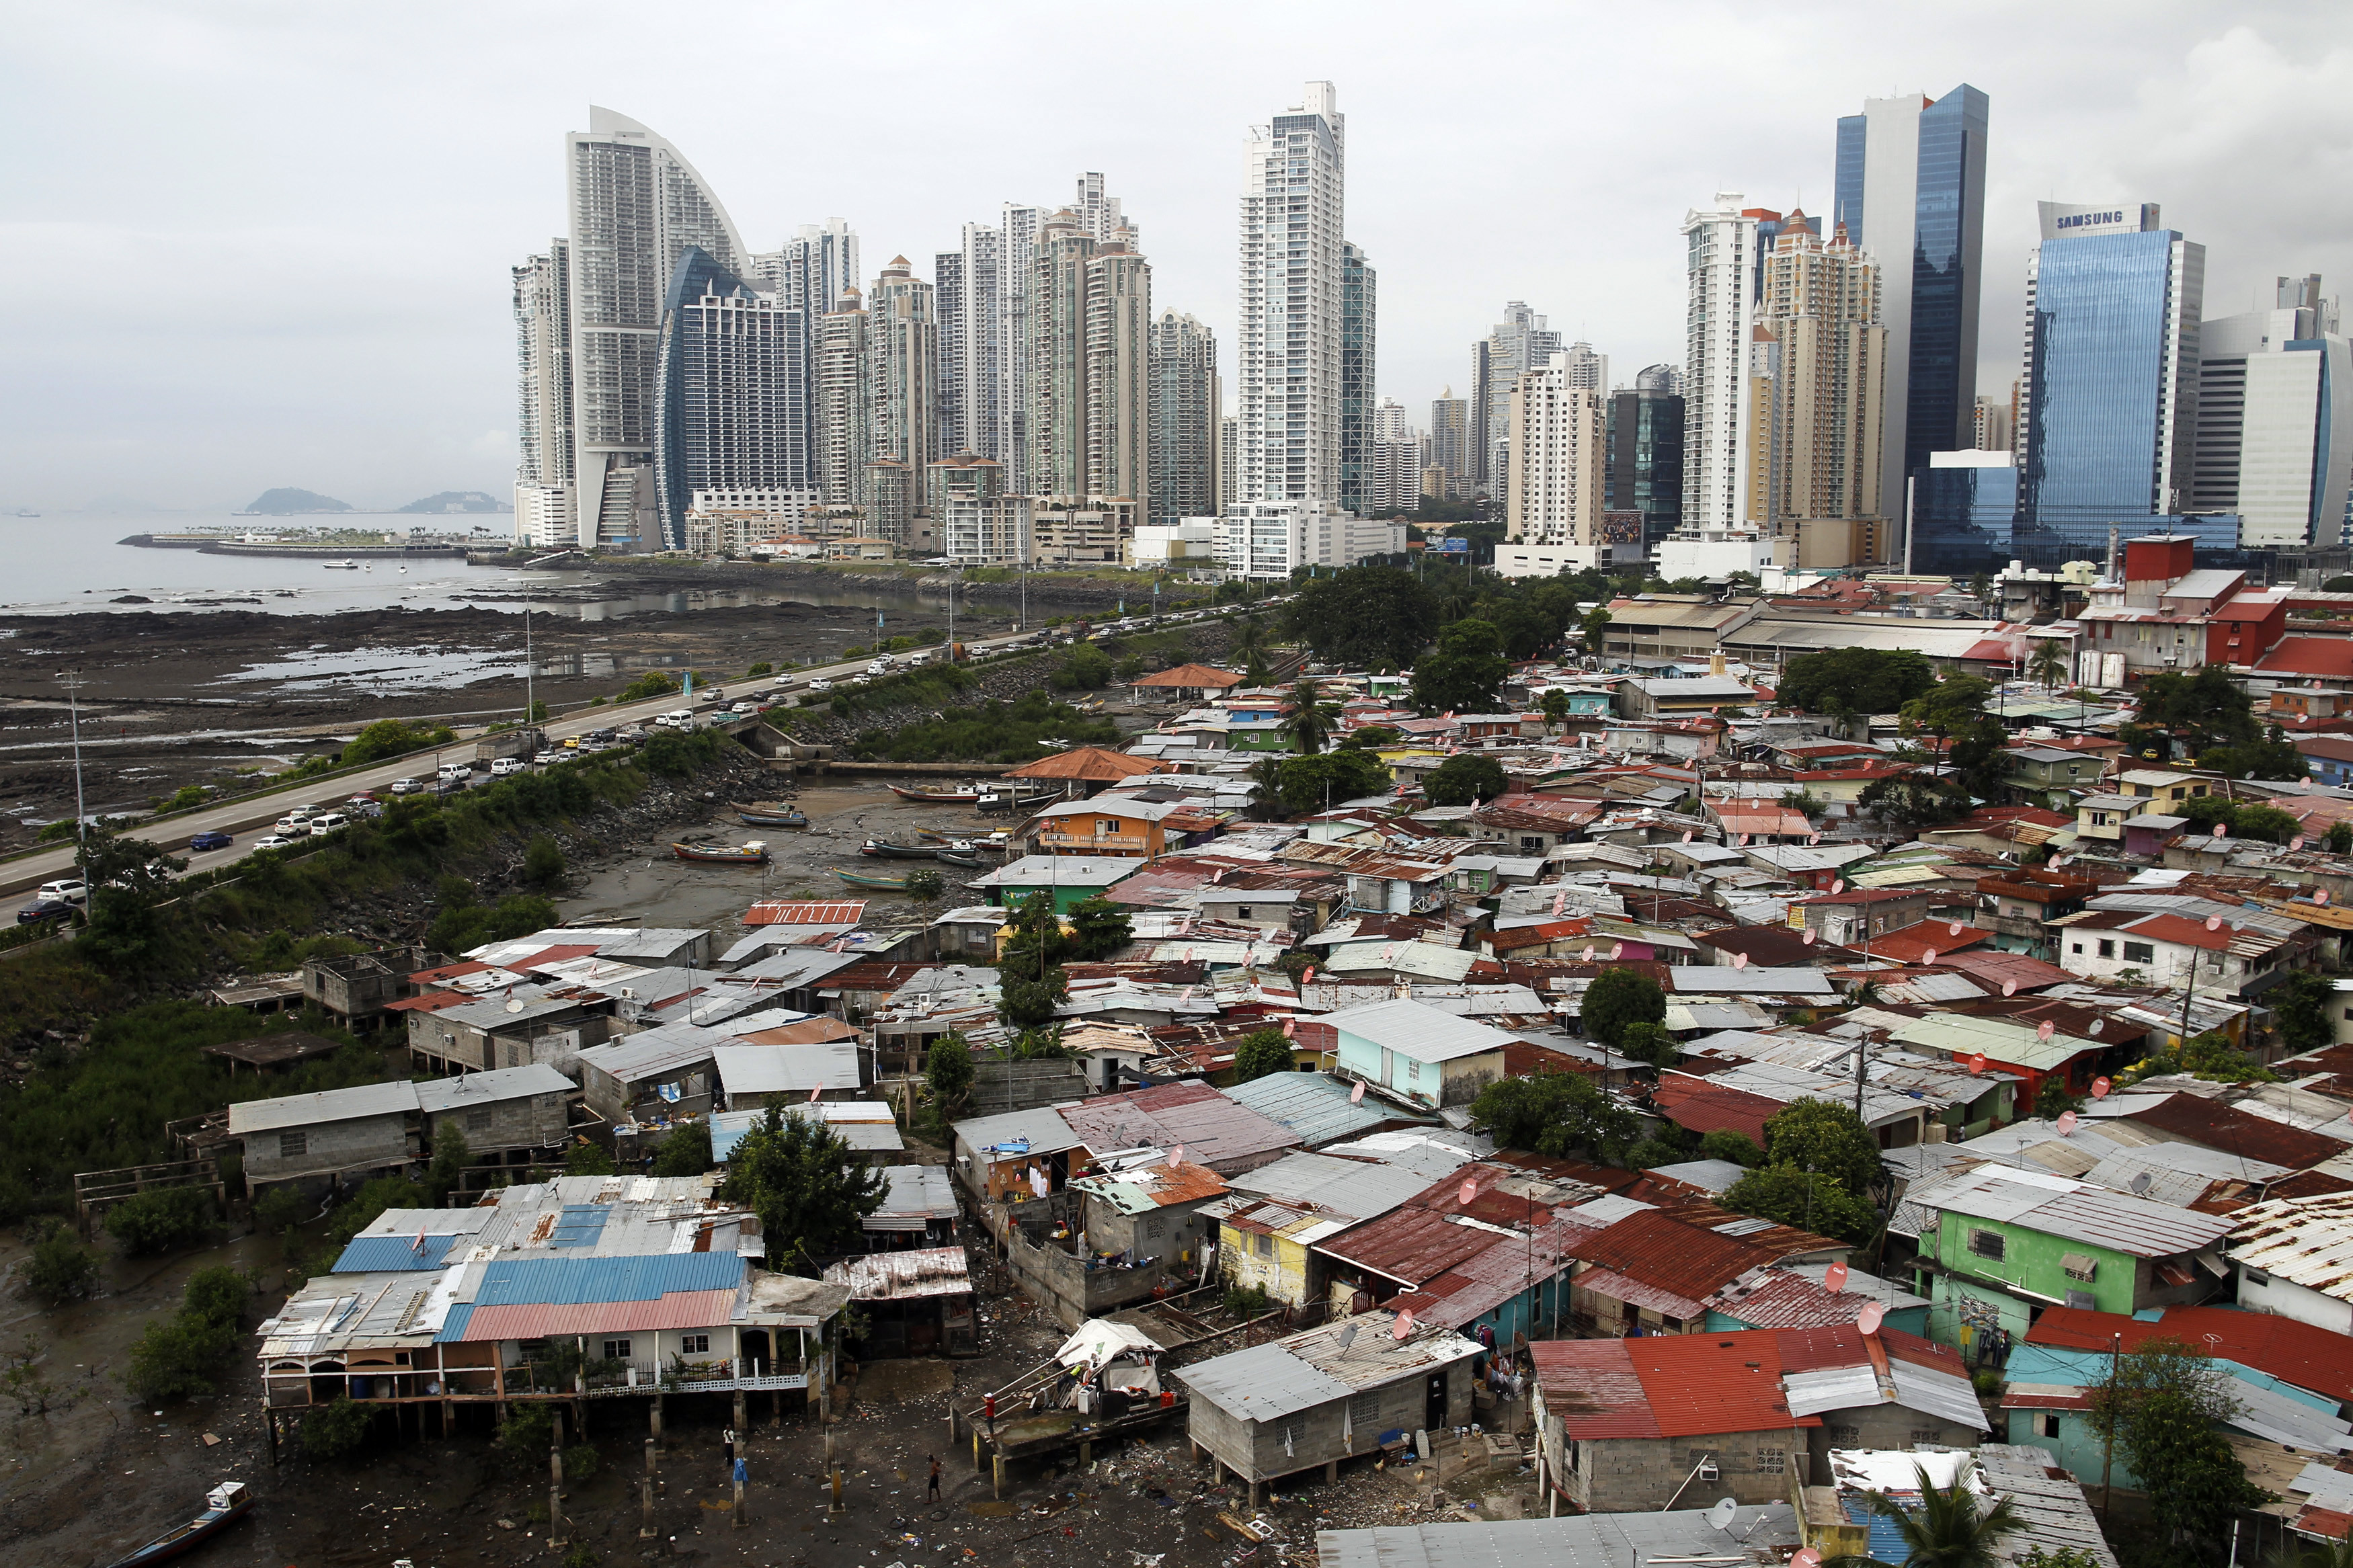 A low-income neighborhood adjacent to the business district in Panama City.